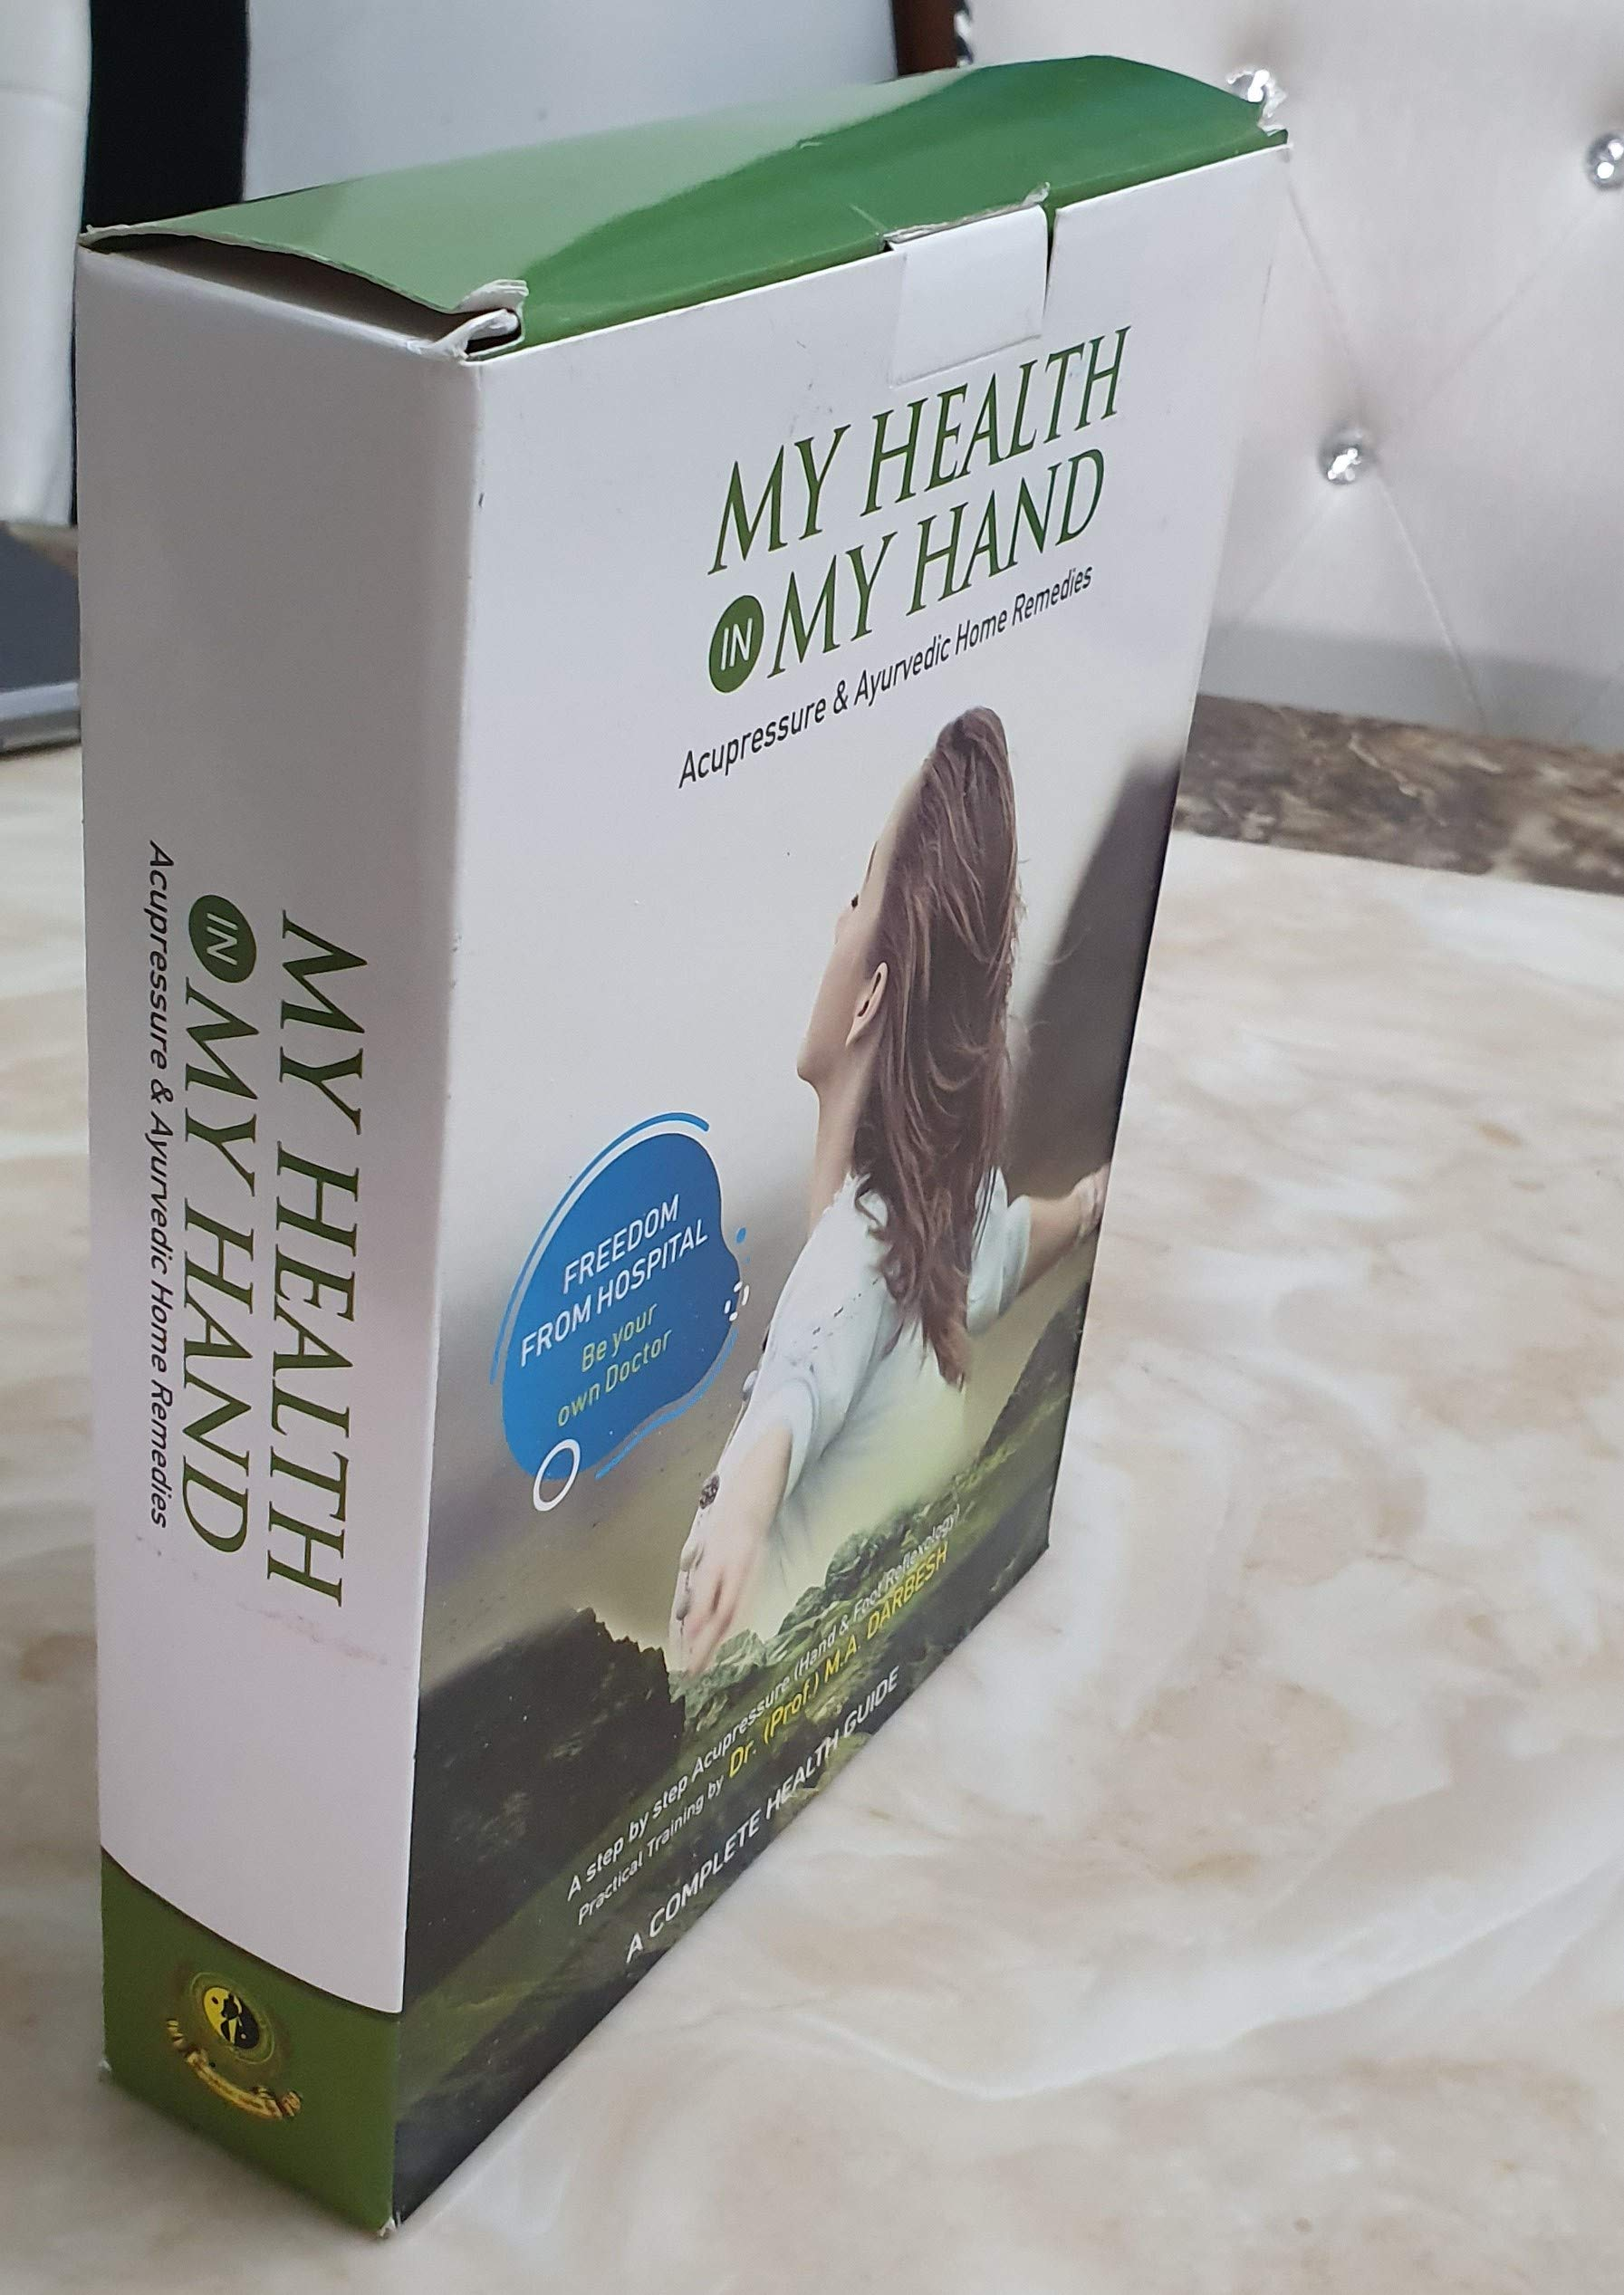 Buy My Health in My Hand (Part-1&Part-2)Complete Acupressure & Ayurvedic  home remedies book Book Online at Low Prices in India | My Health in My Hand  (Part-1&Part-2)Complete Acupressure & Ayurvedic home remedies